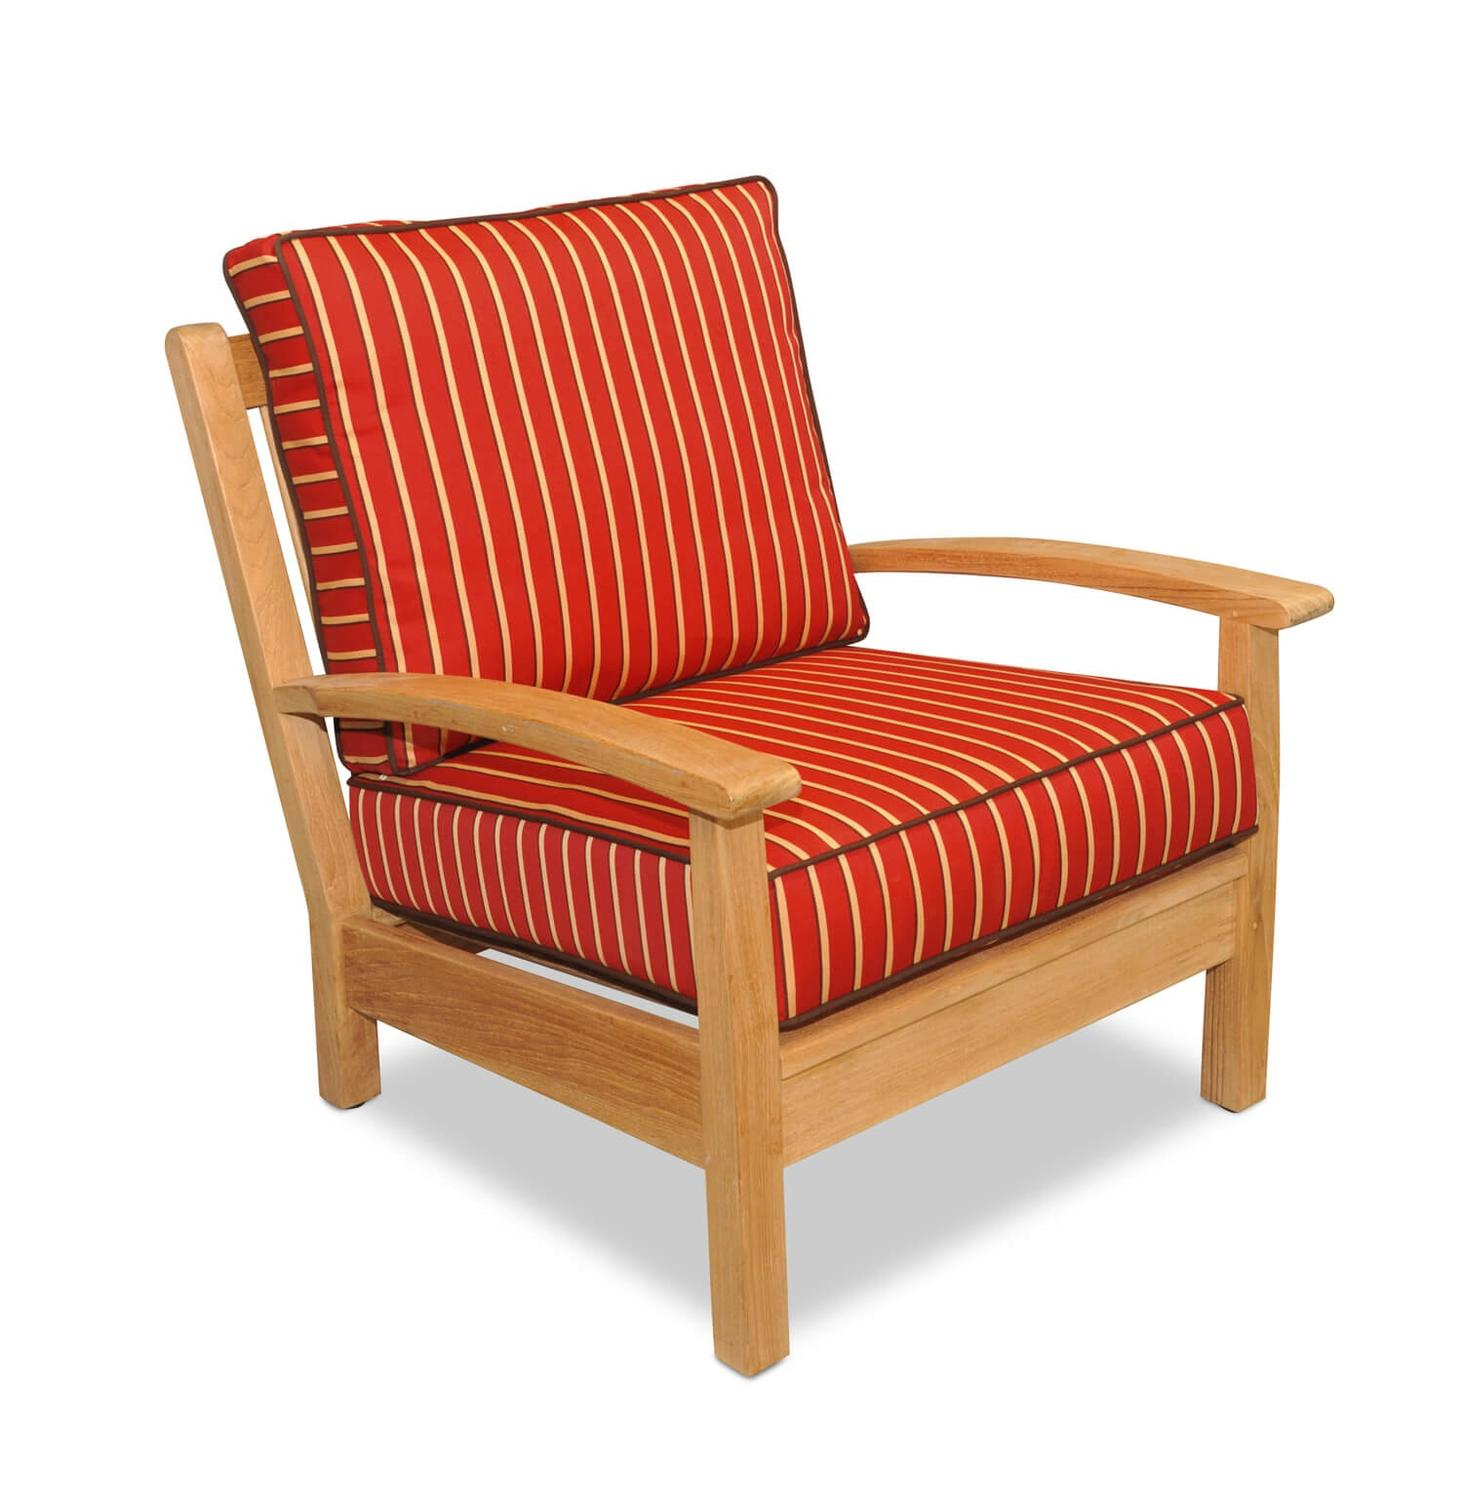 "34"" Natural Teak Deep Seating Outdoor Patio Lounge Chair with Crimson Striped Cushions"